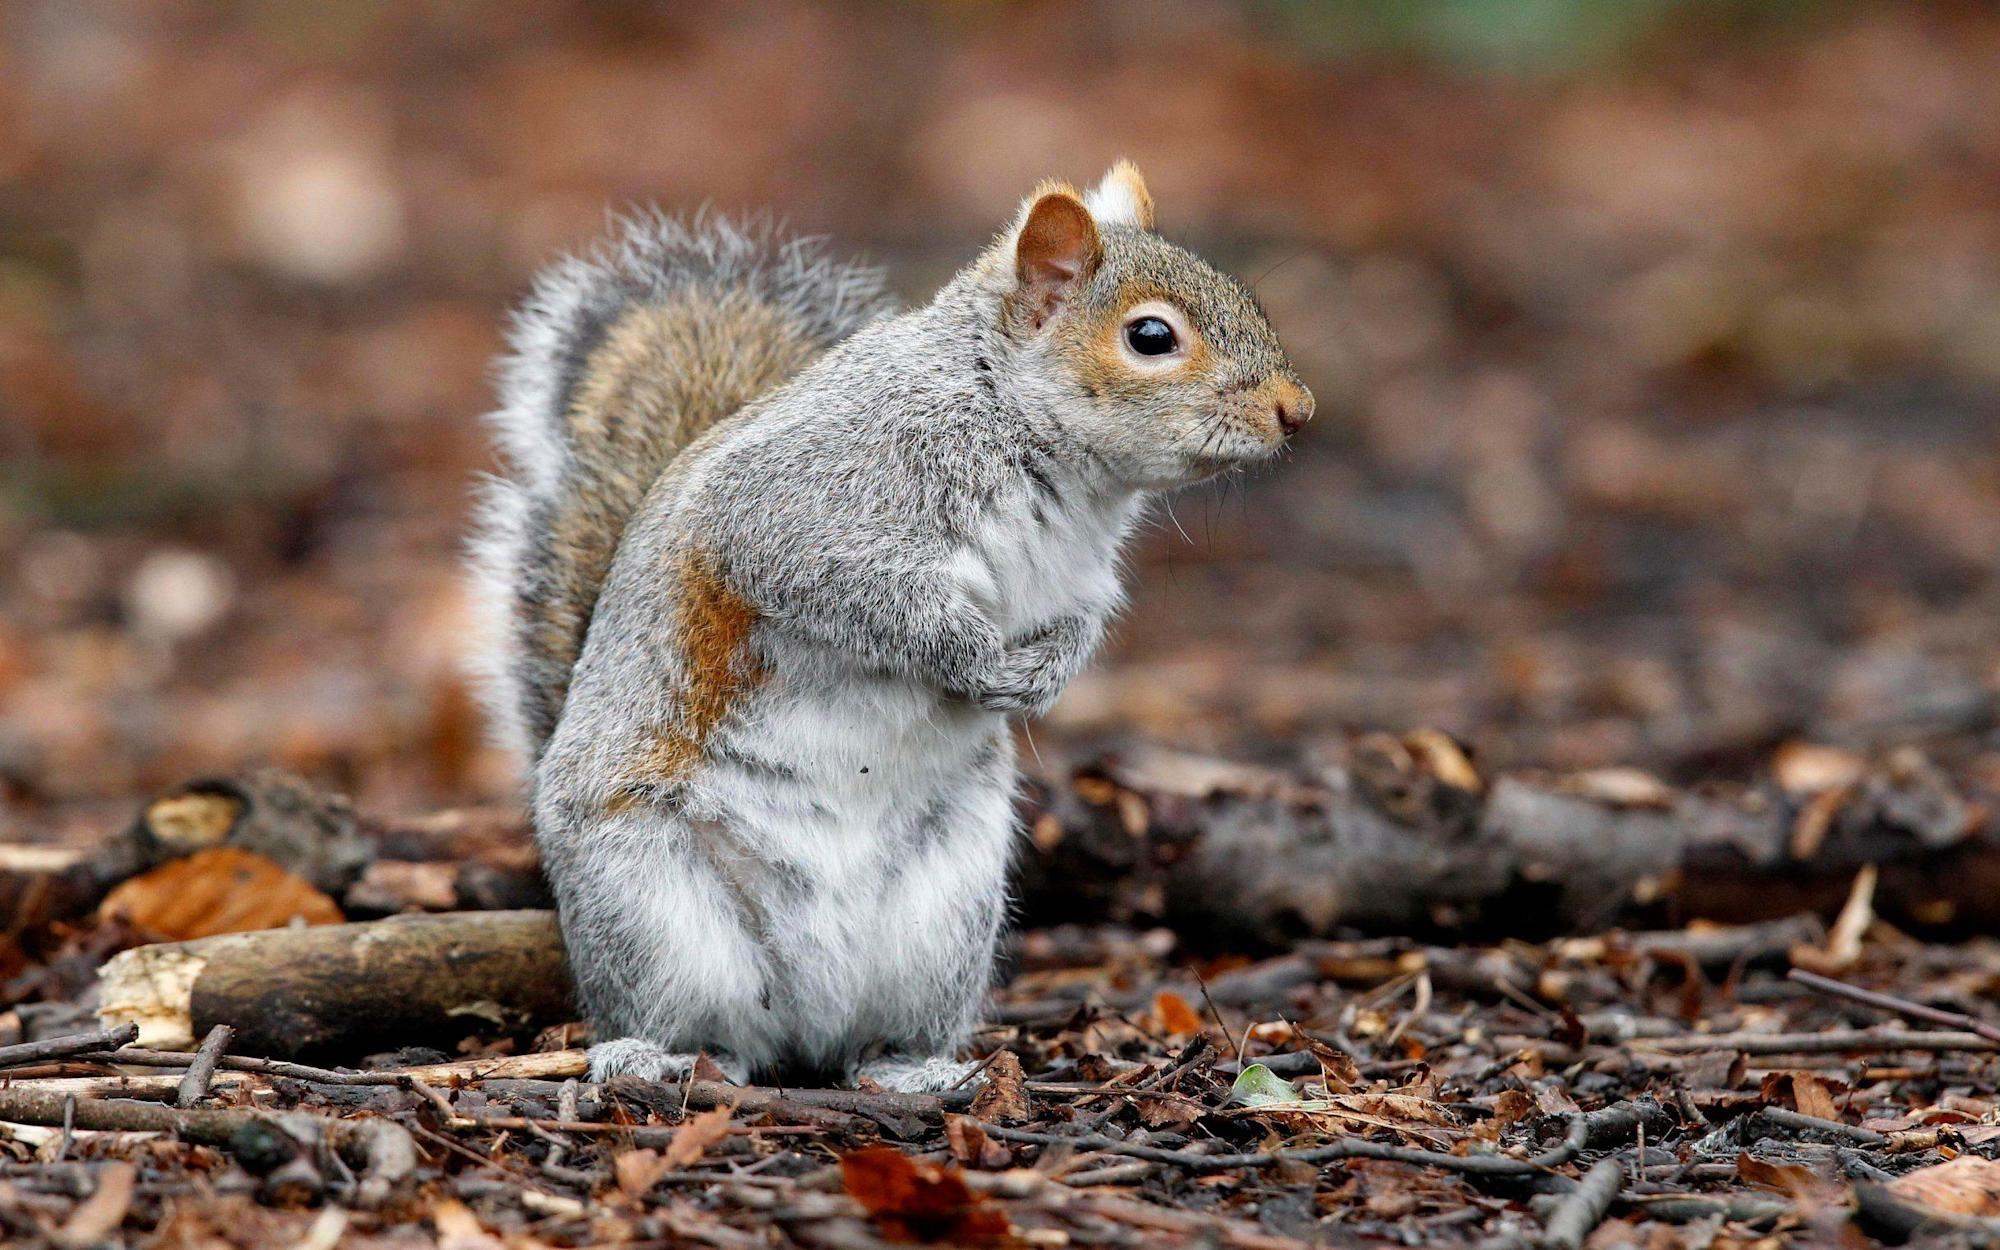 Releasing mutant grey squirrels into wild to spread infertility could tackle burgeoning population